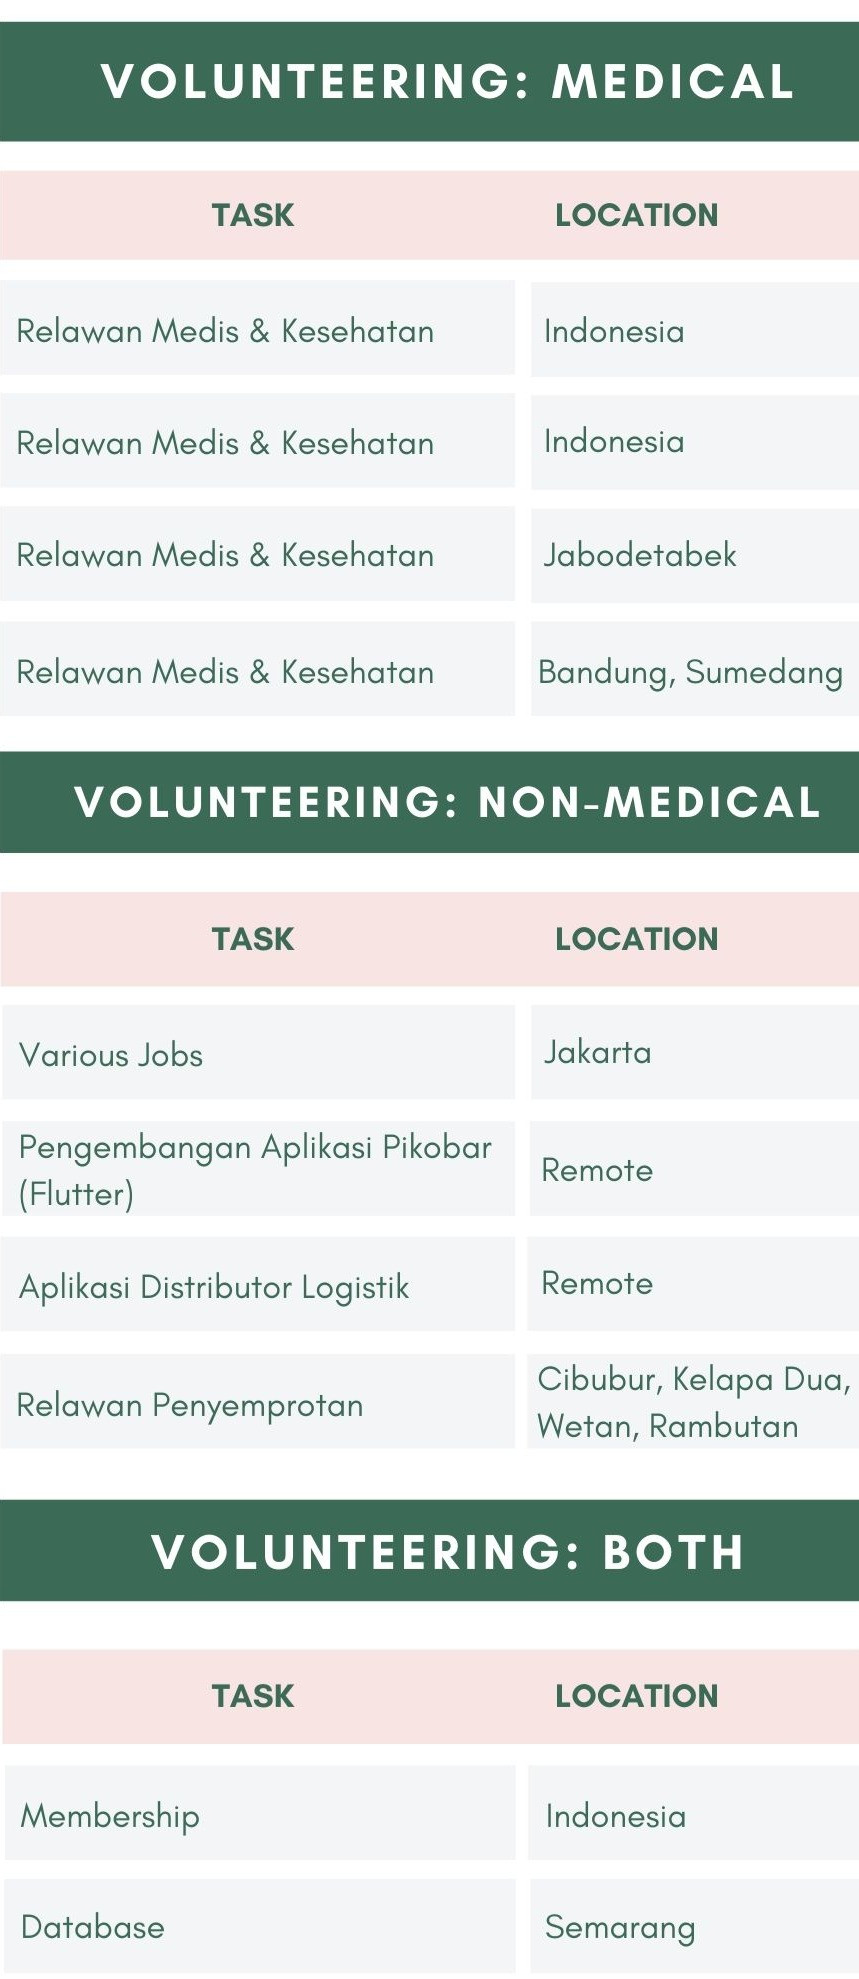 List of places to volunteer to aid in COVID-19 relief